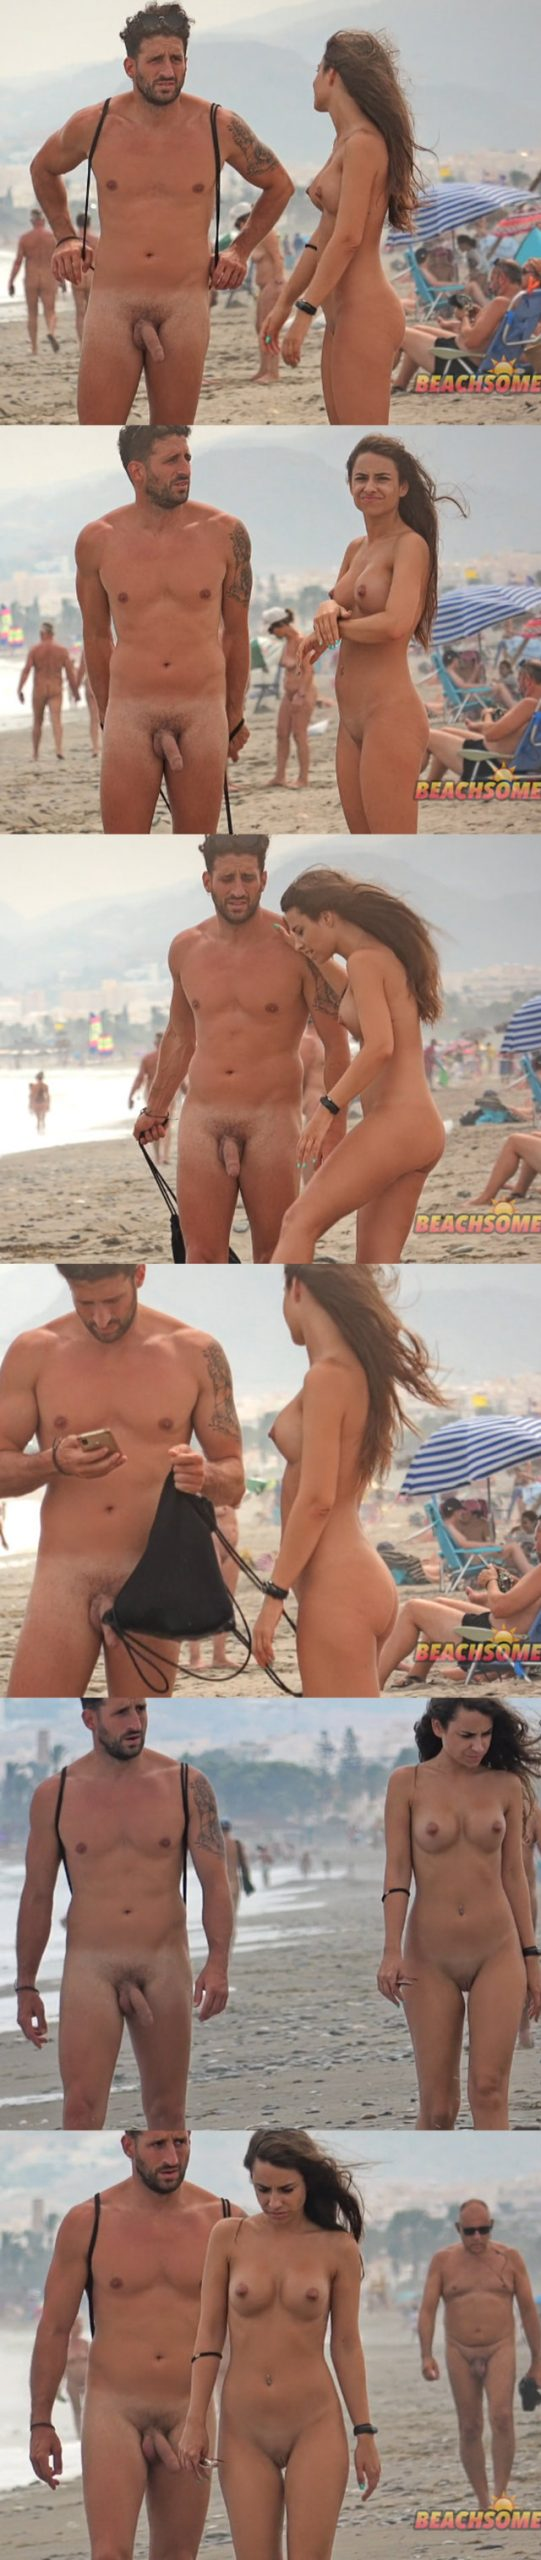 spy on straight nudist guy at the beach